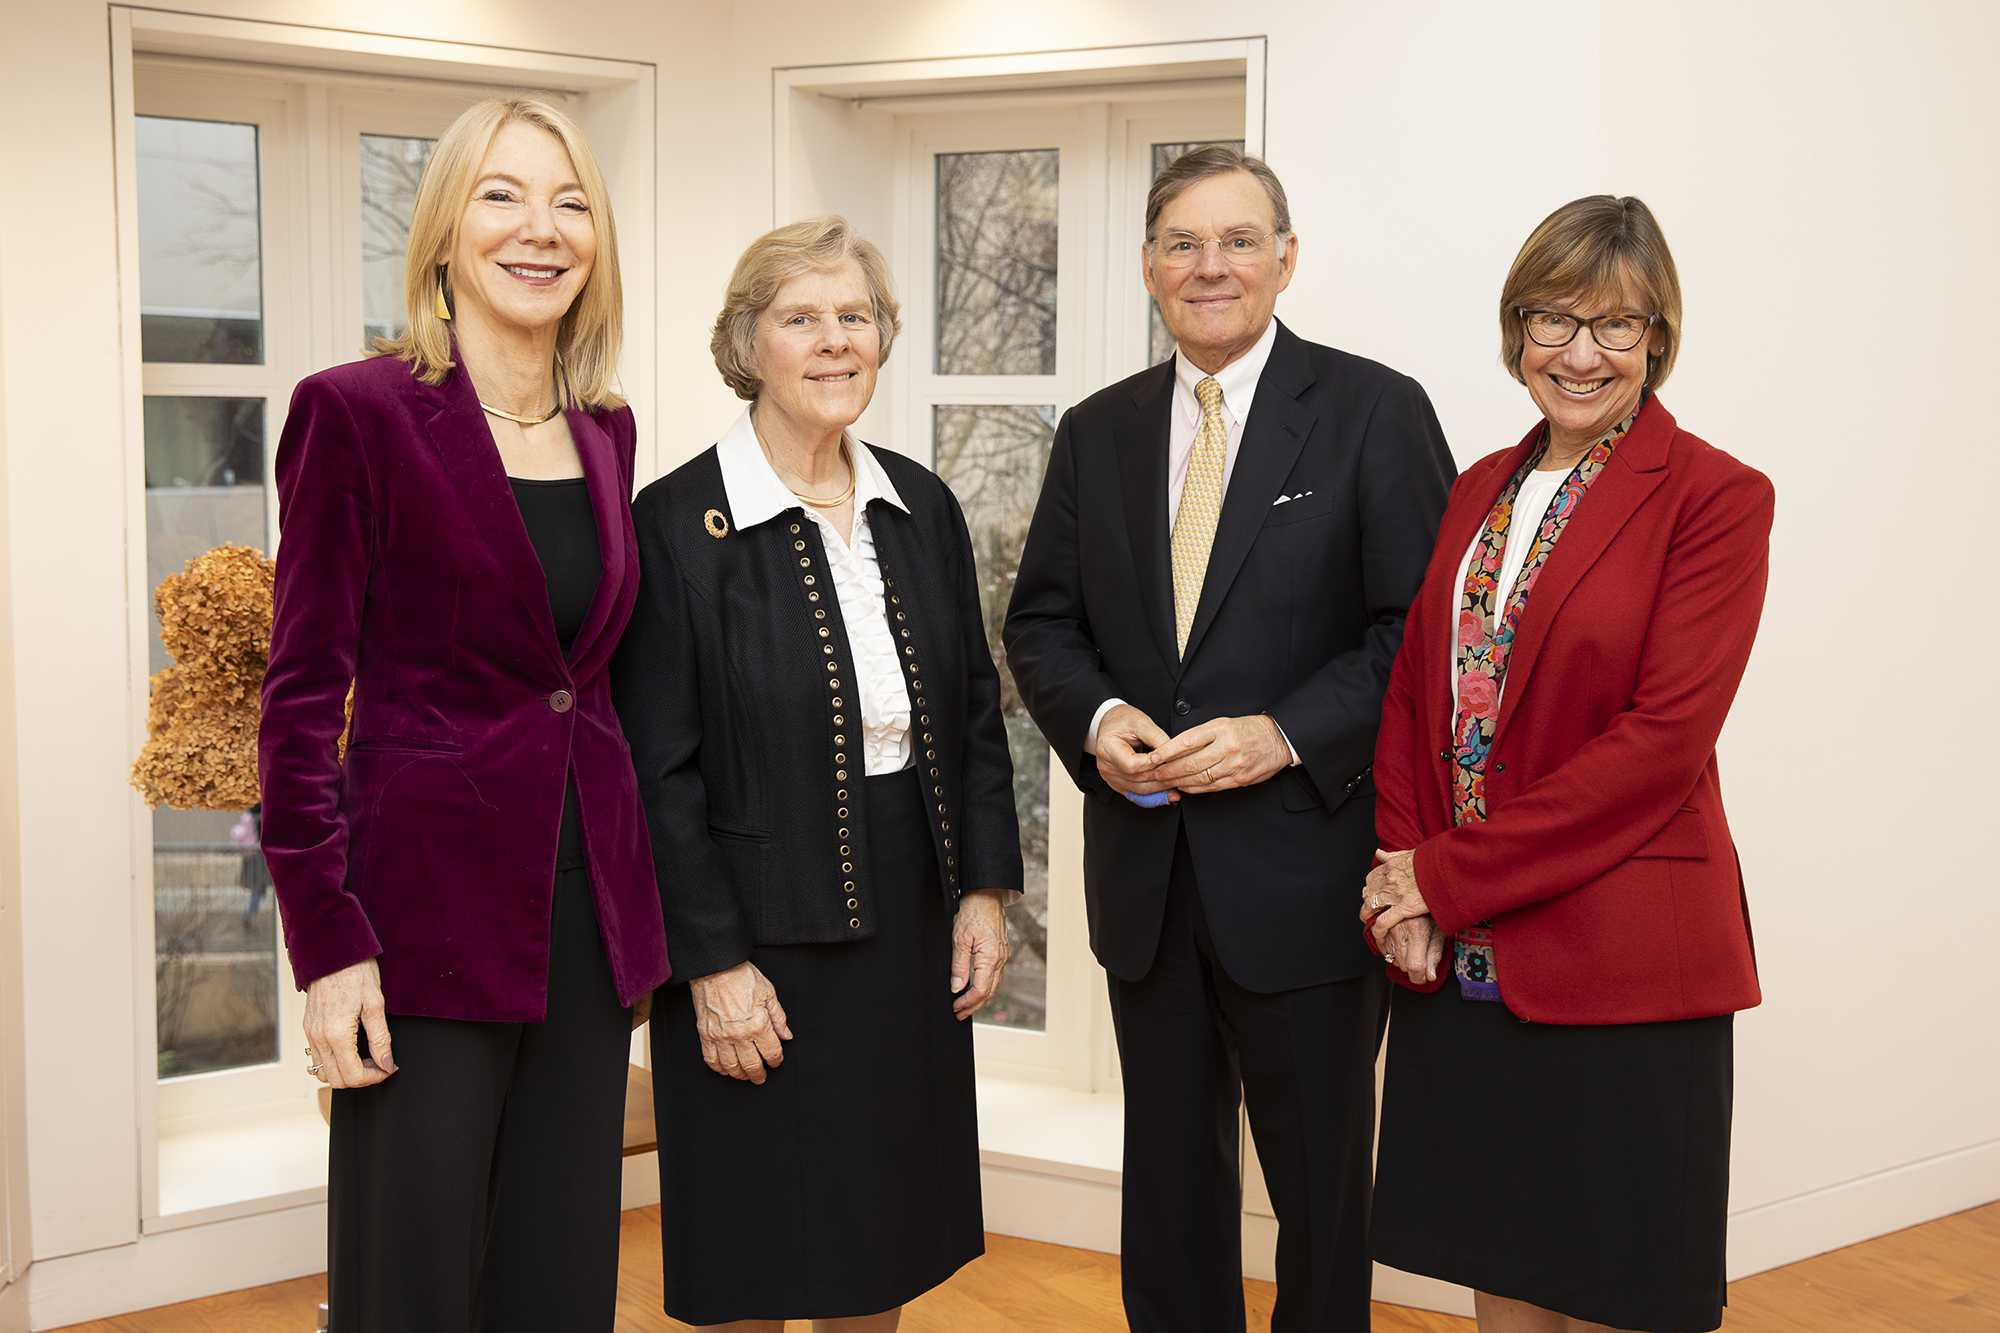 Penn President Amy Gutmann stands with three other people from Penn GSE.